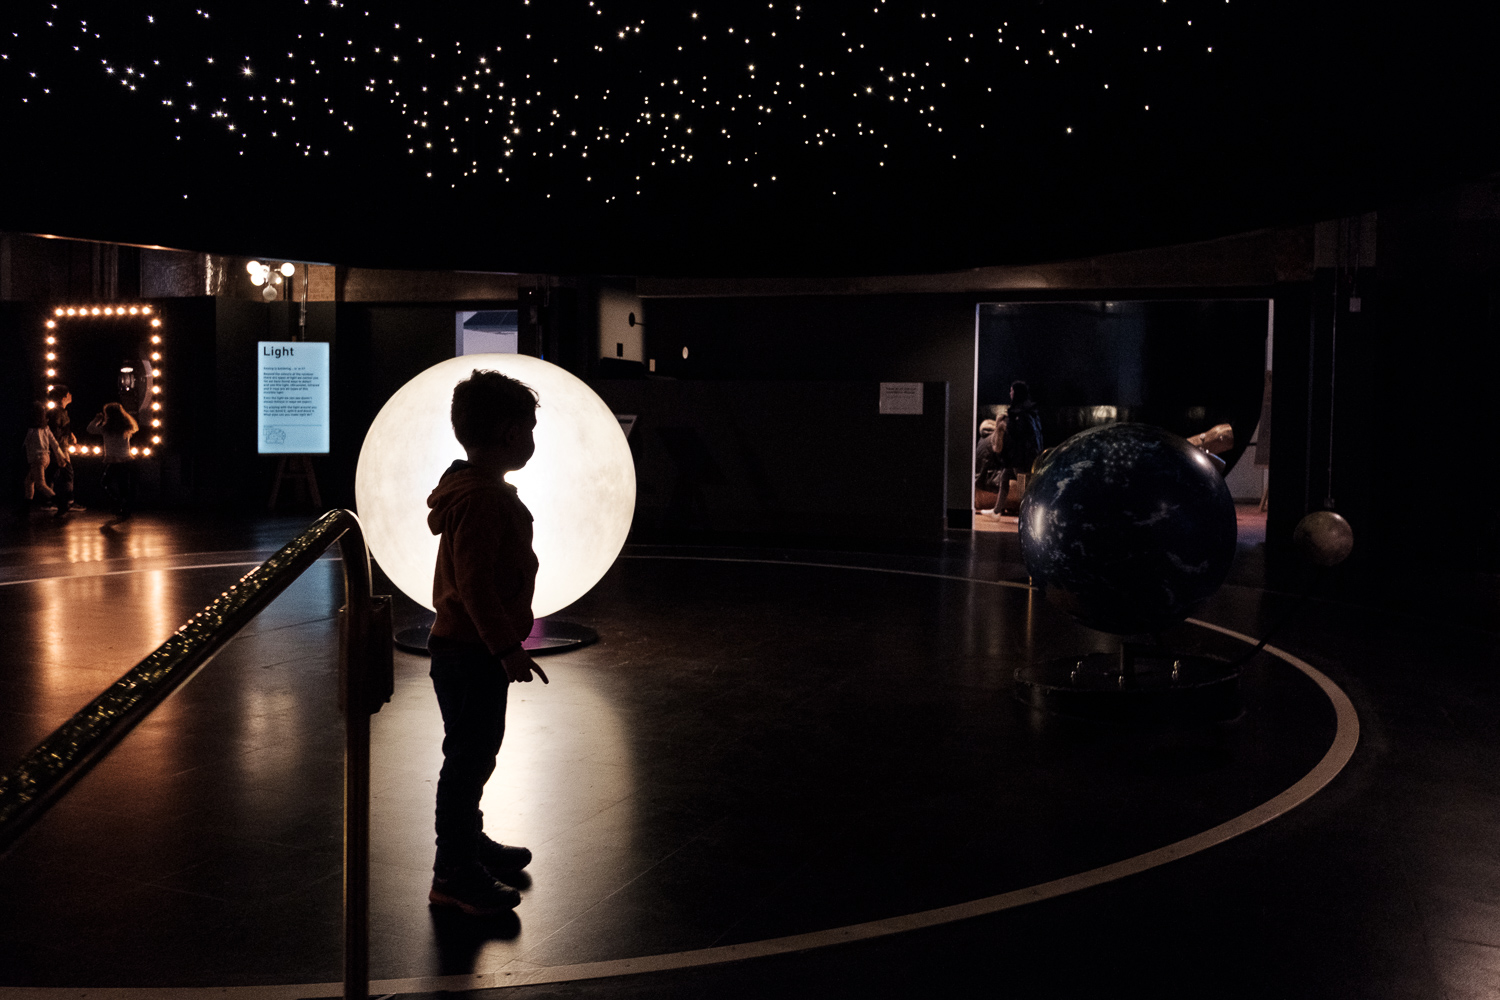 Silhouette of a child's figure against a round shape at a museum.